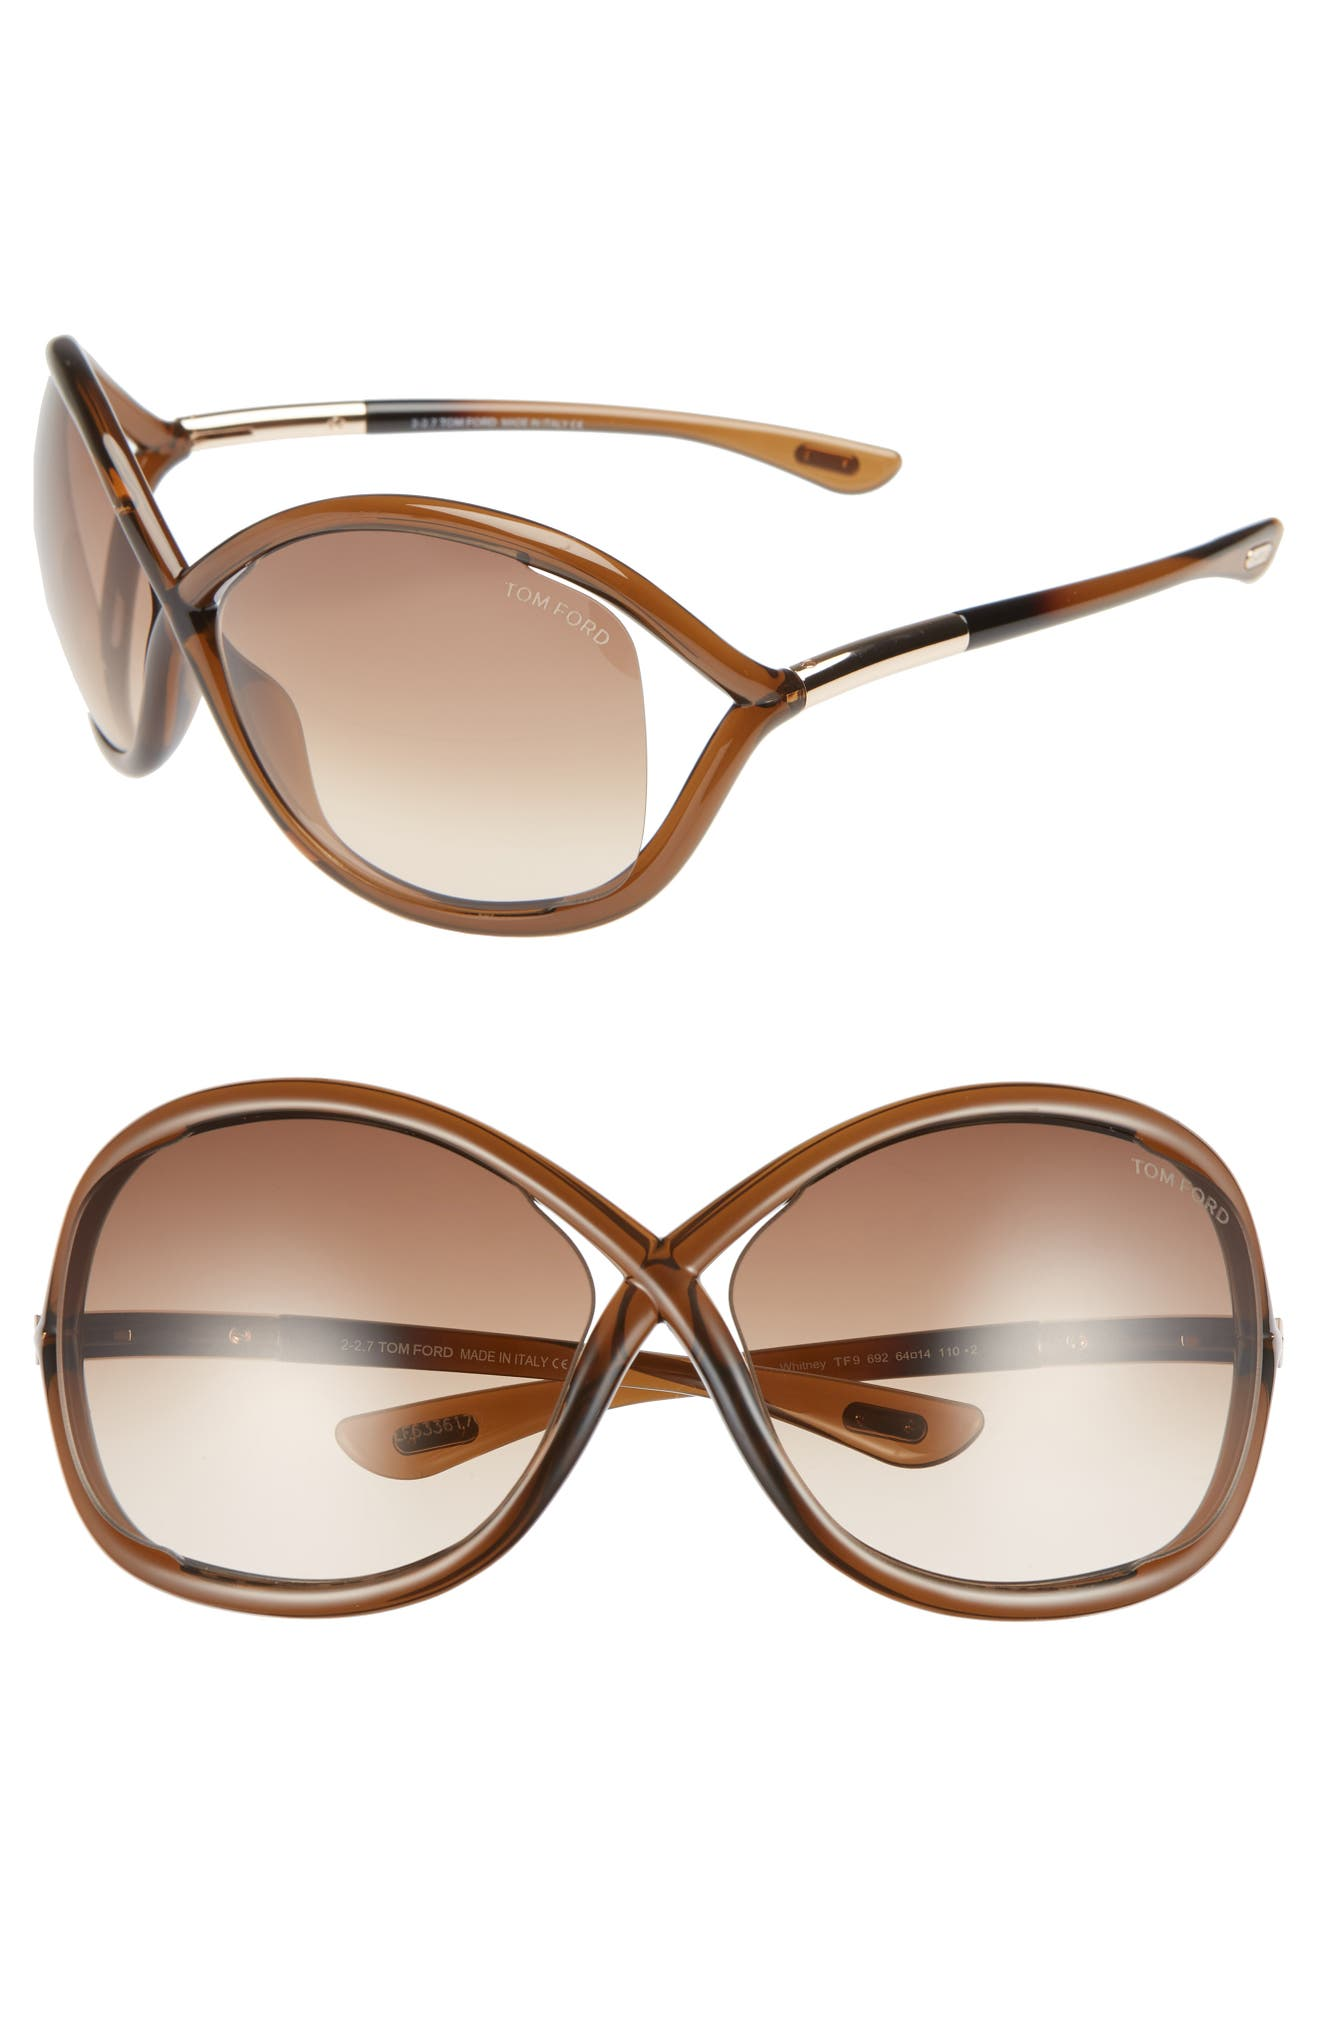 99e3d5a4ddc19 Tom Ford  Whitney  64mm Open Side Sunglasses